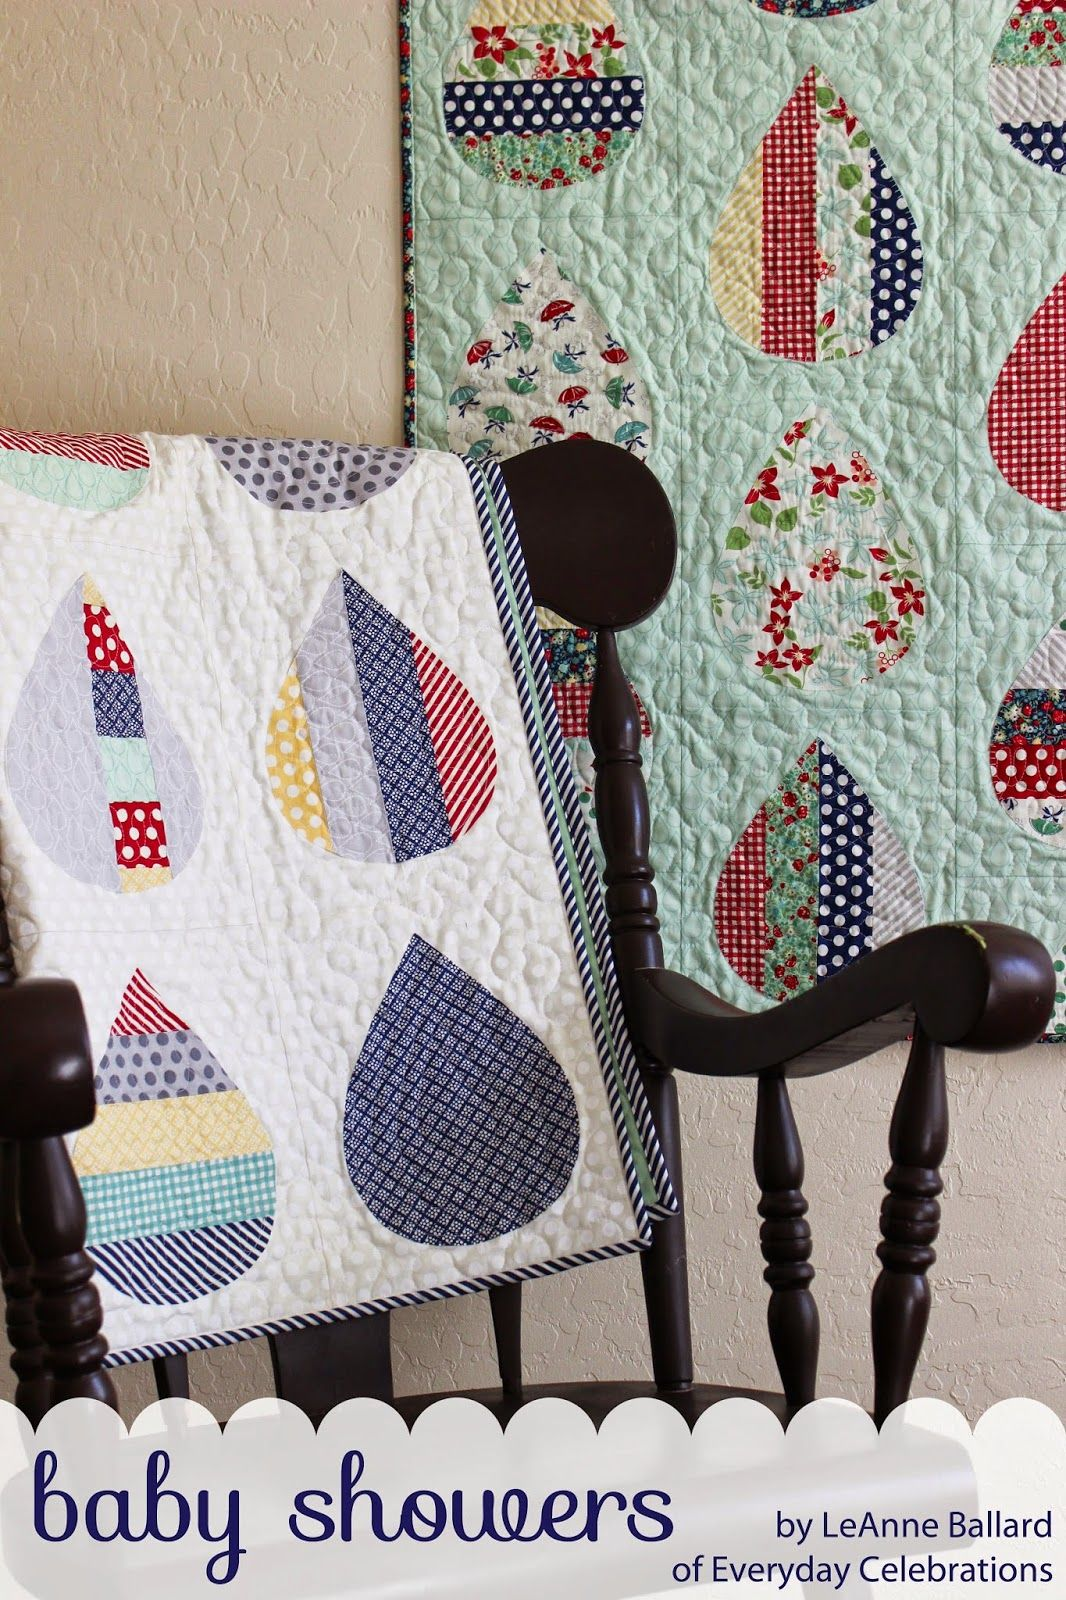 baby showers quilt | quilting with go cutter system and ideas to use